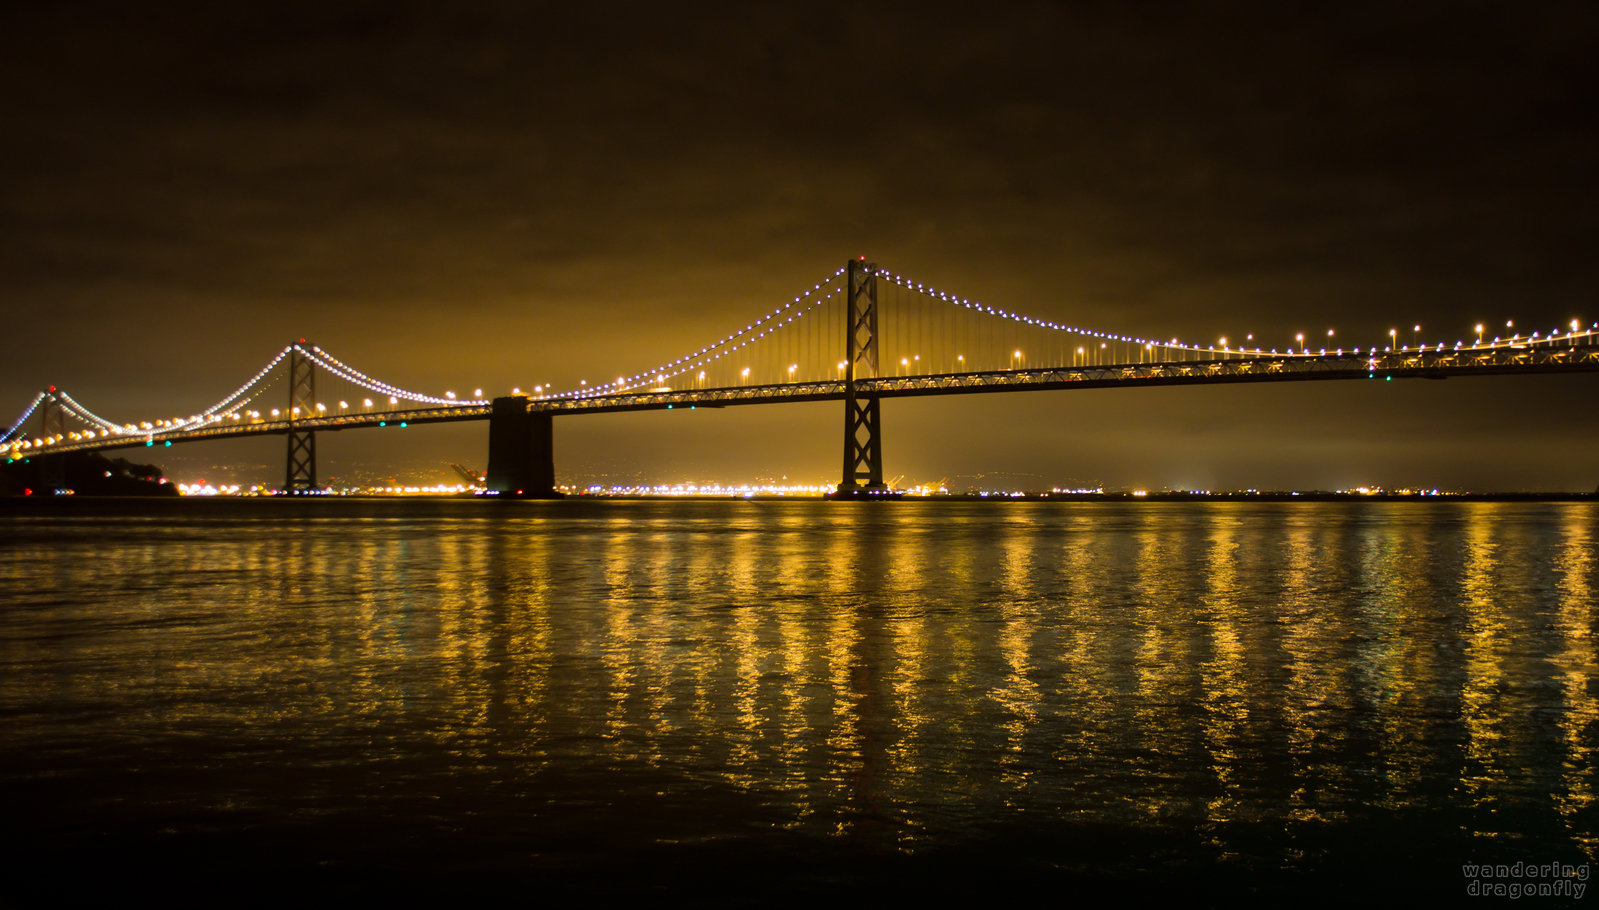 The Bay Bridge at night -- bridge, night, water